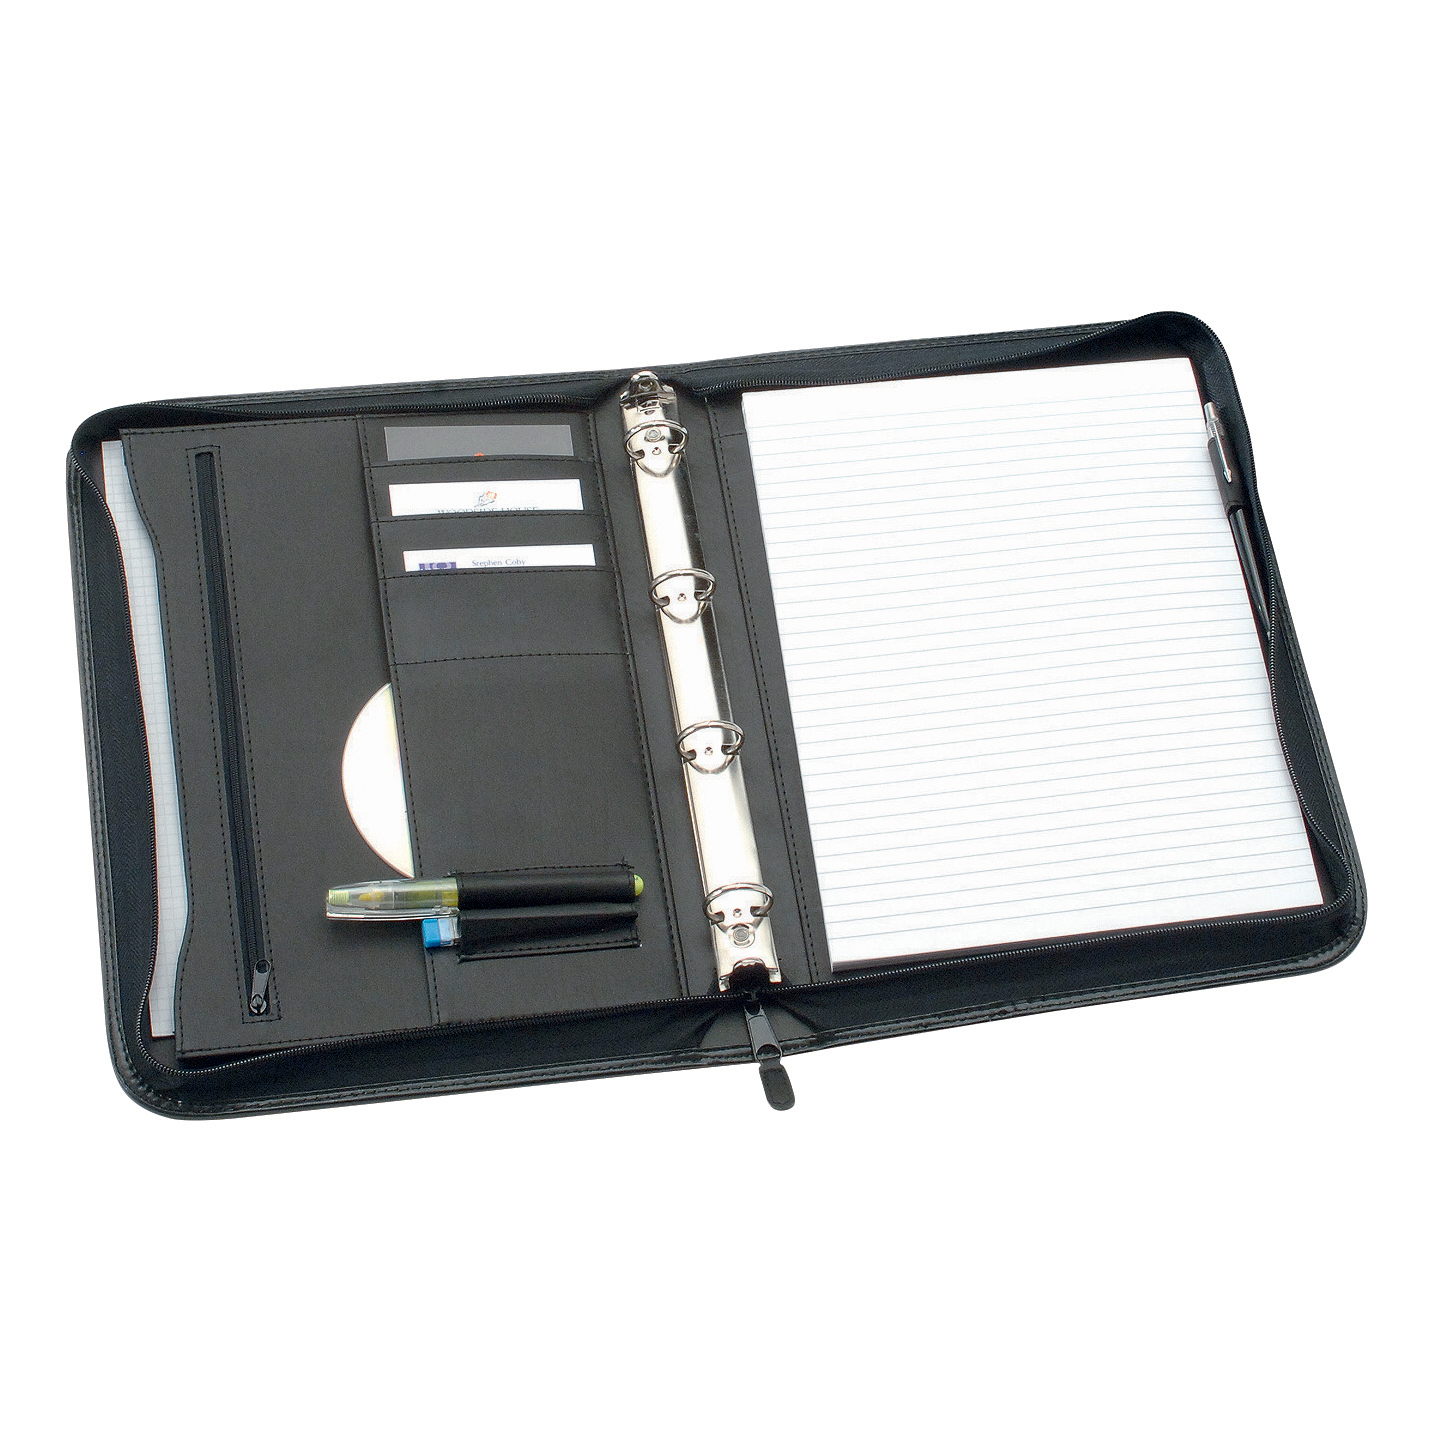 5 Star Zipped Conference 4 Ring Binder Capacity 25mm W254xH360mm A4 Black